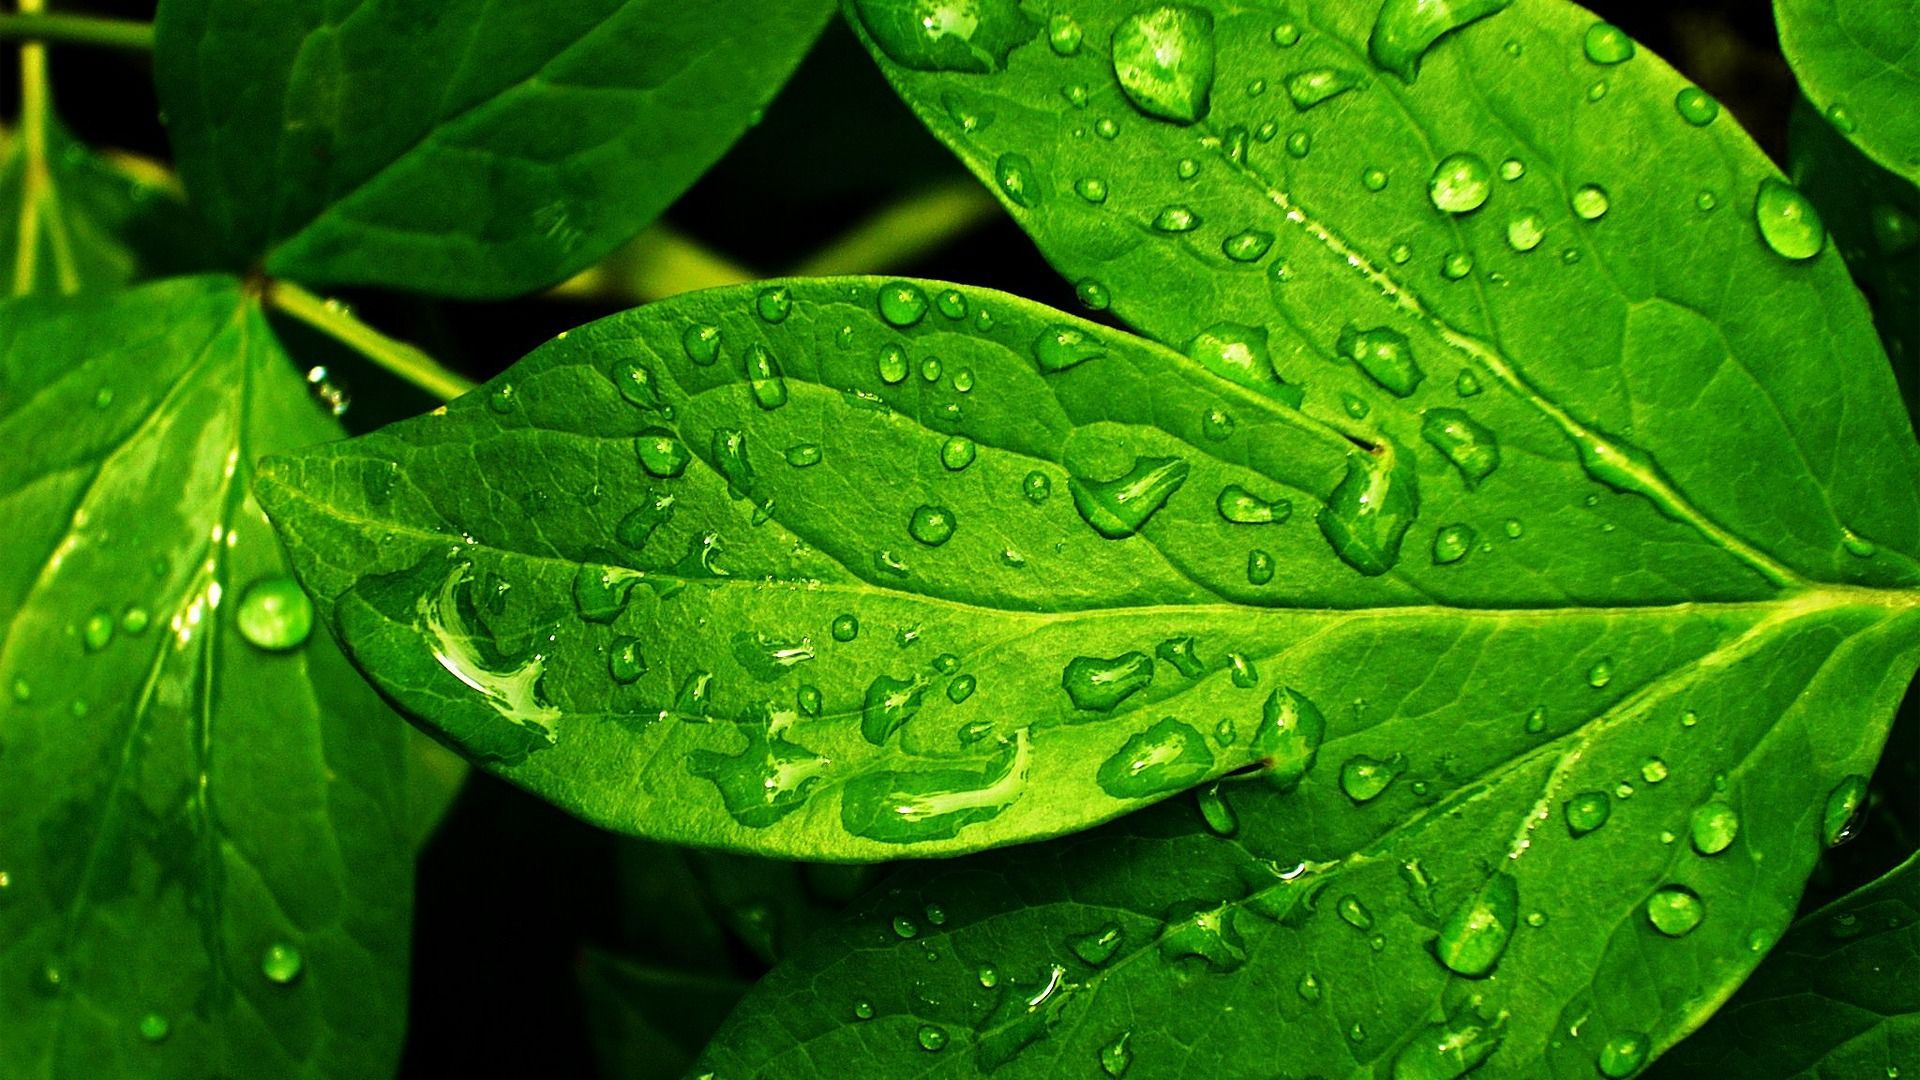 Green Leaf Nature Fresh Wallpaper Hd Desktop Free 432673829 Seni